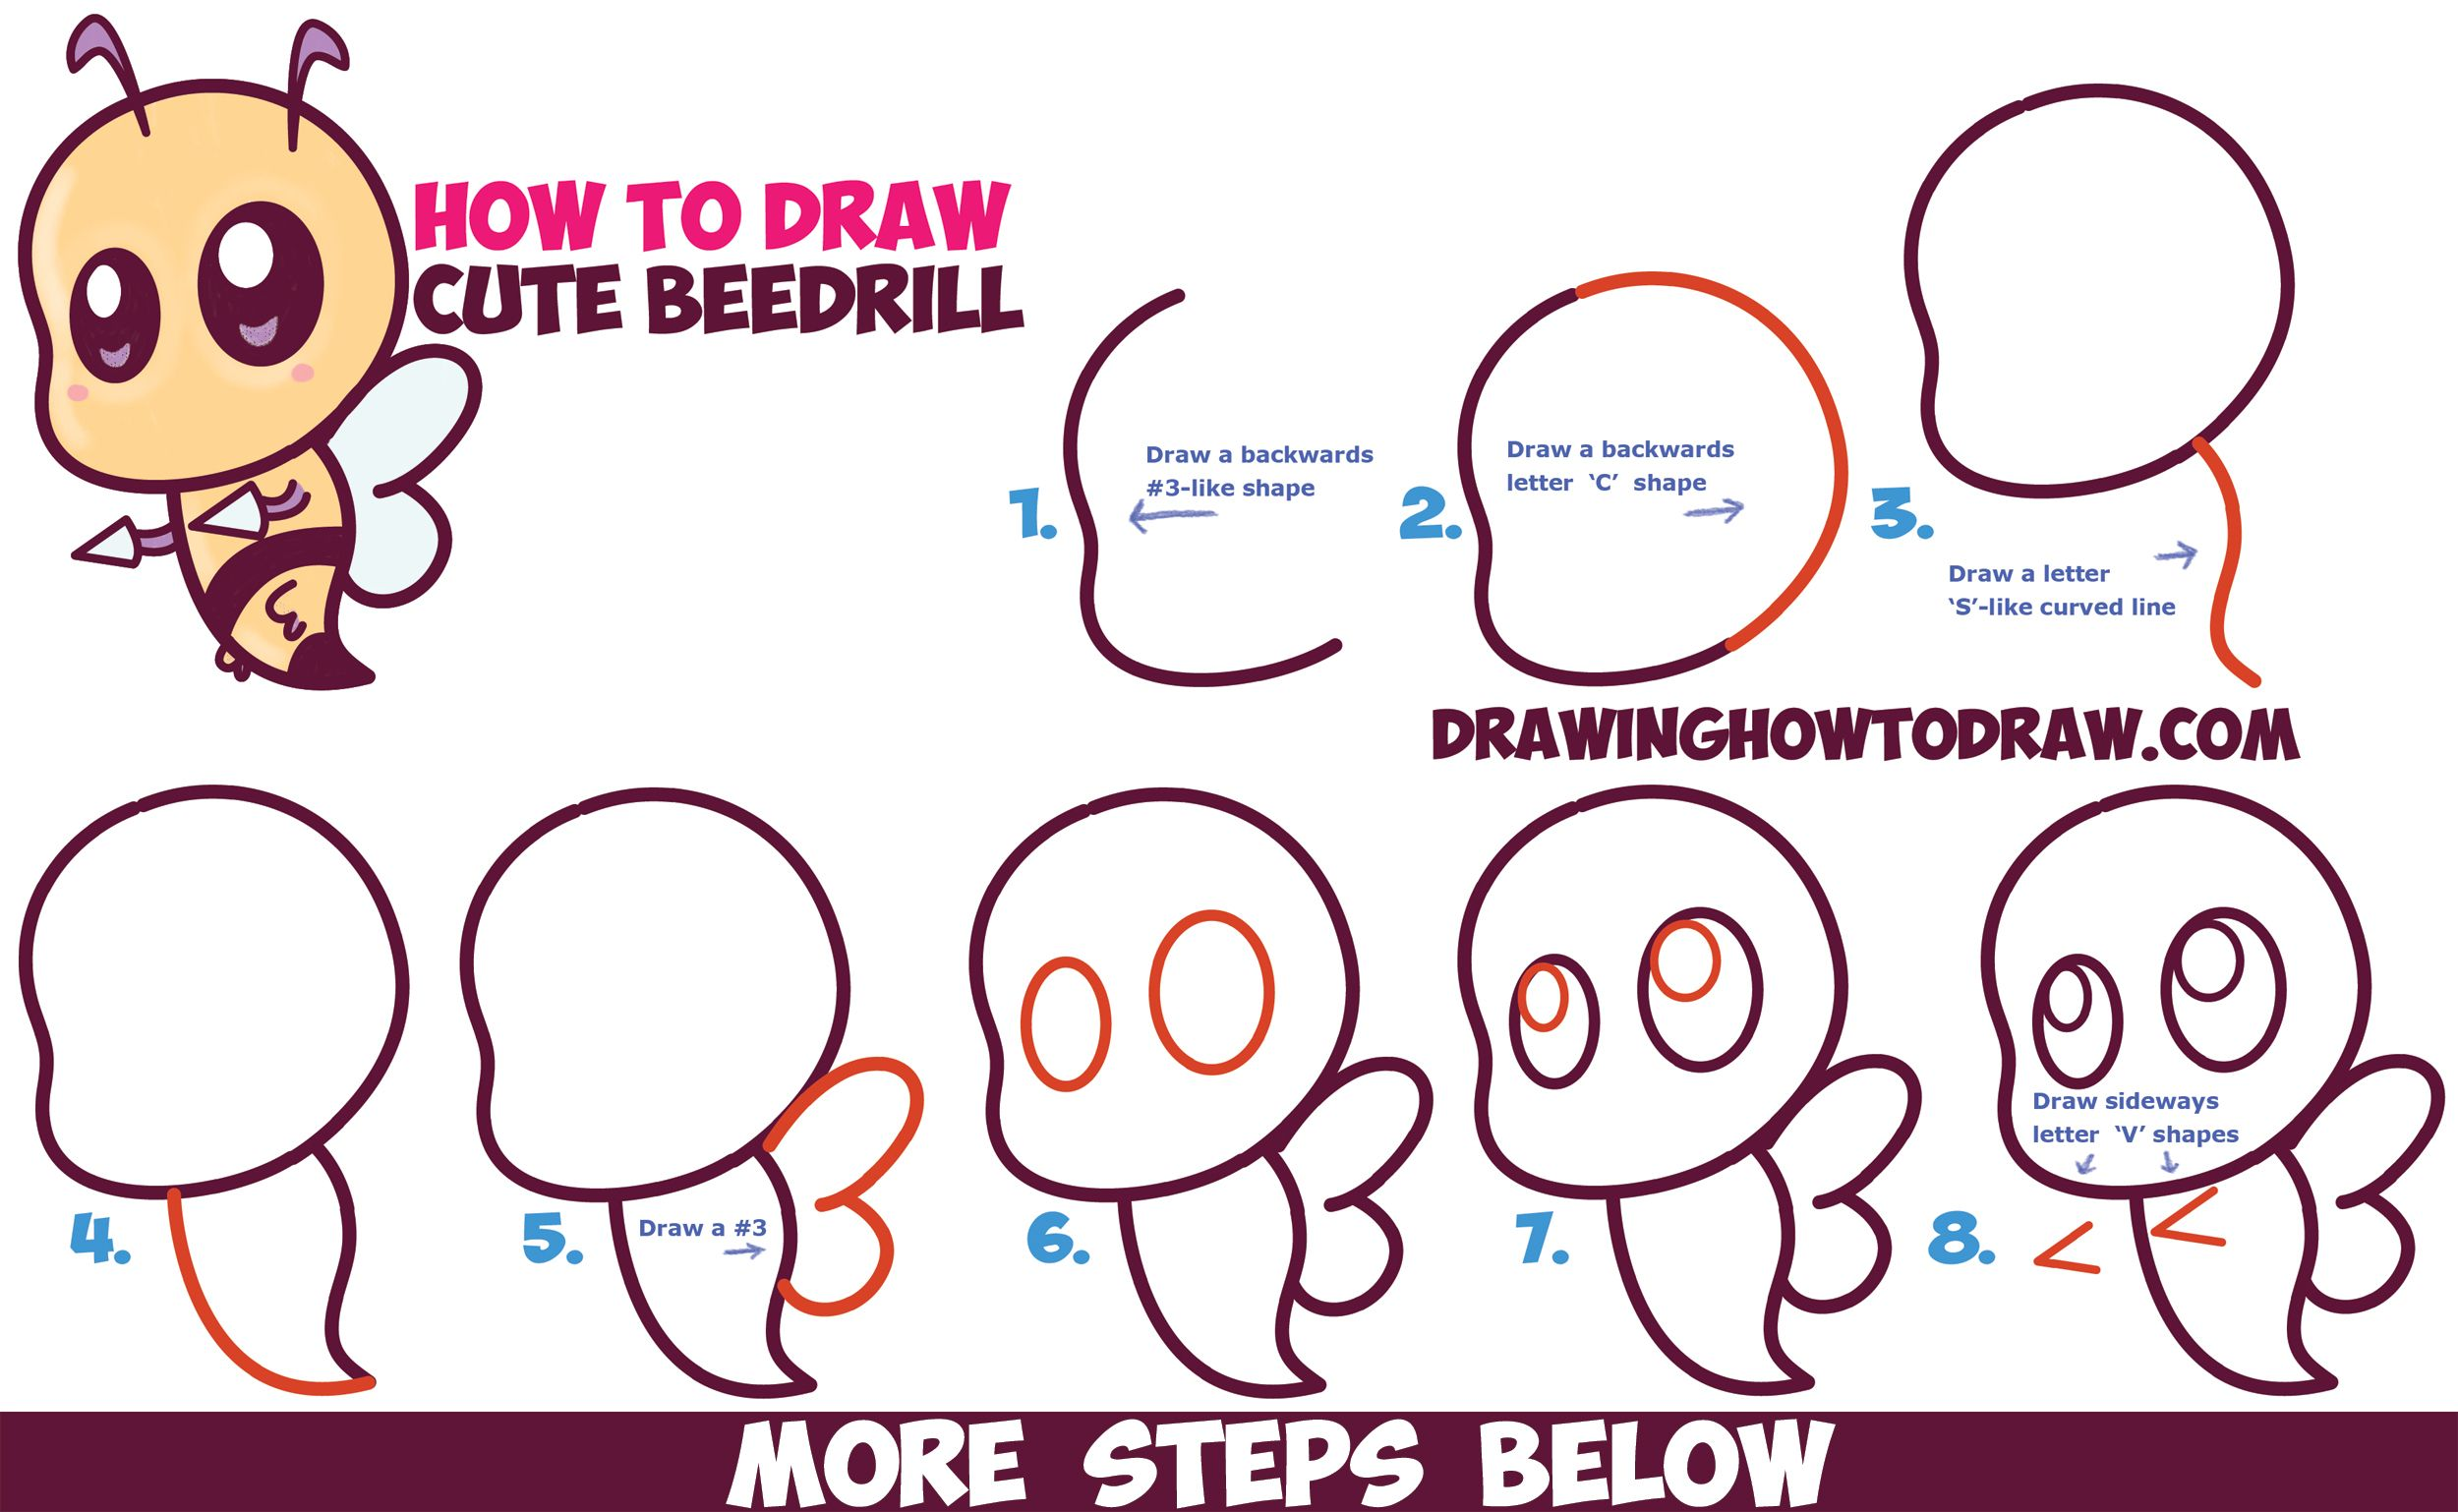 Uncategorized Simple Pokemon To Draw how to draw cute chibi kawaii beedrill from pokemon easy step by drawing